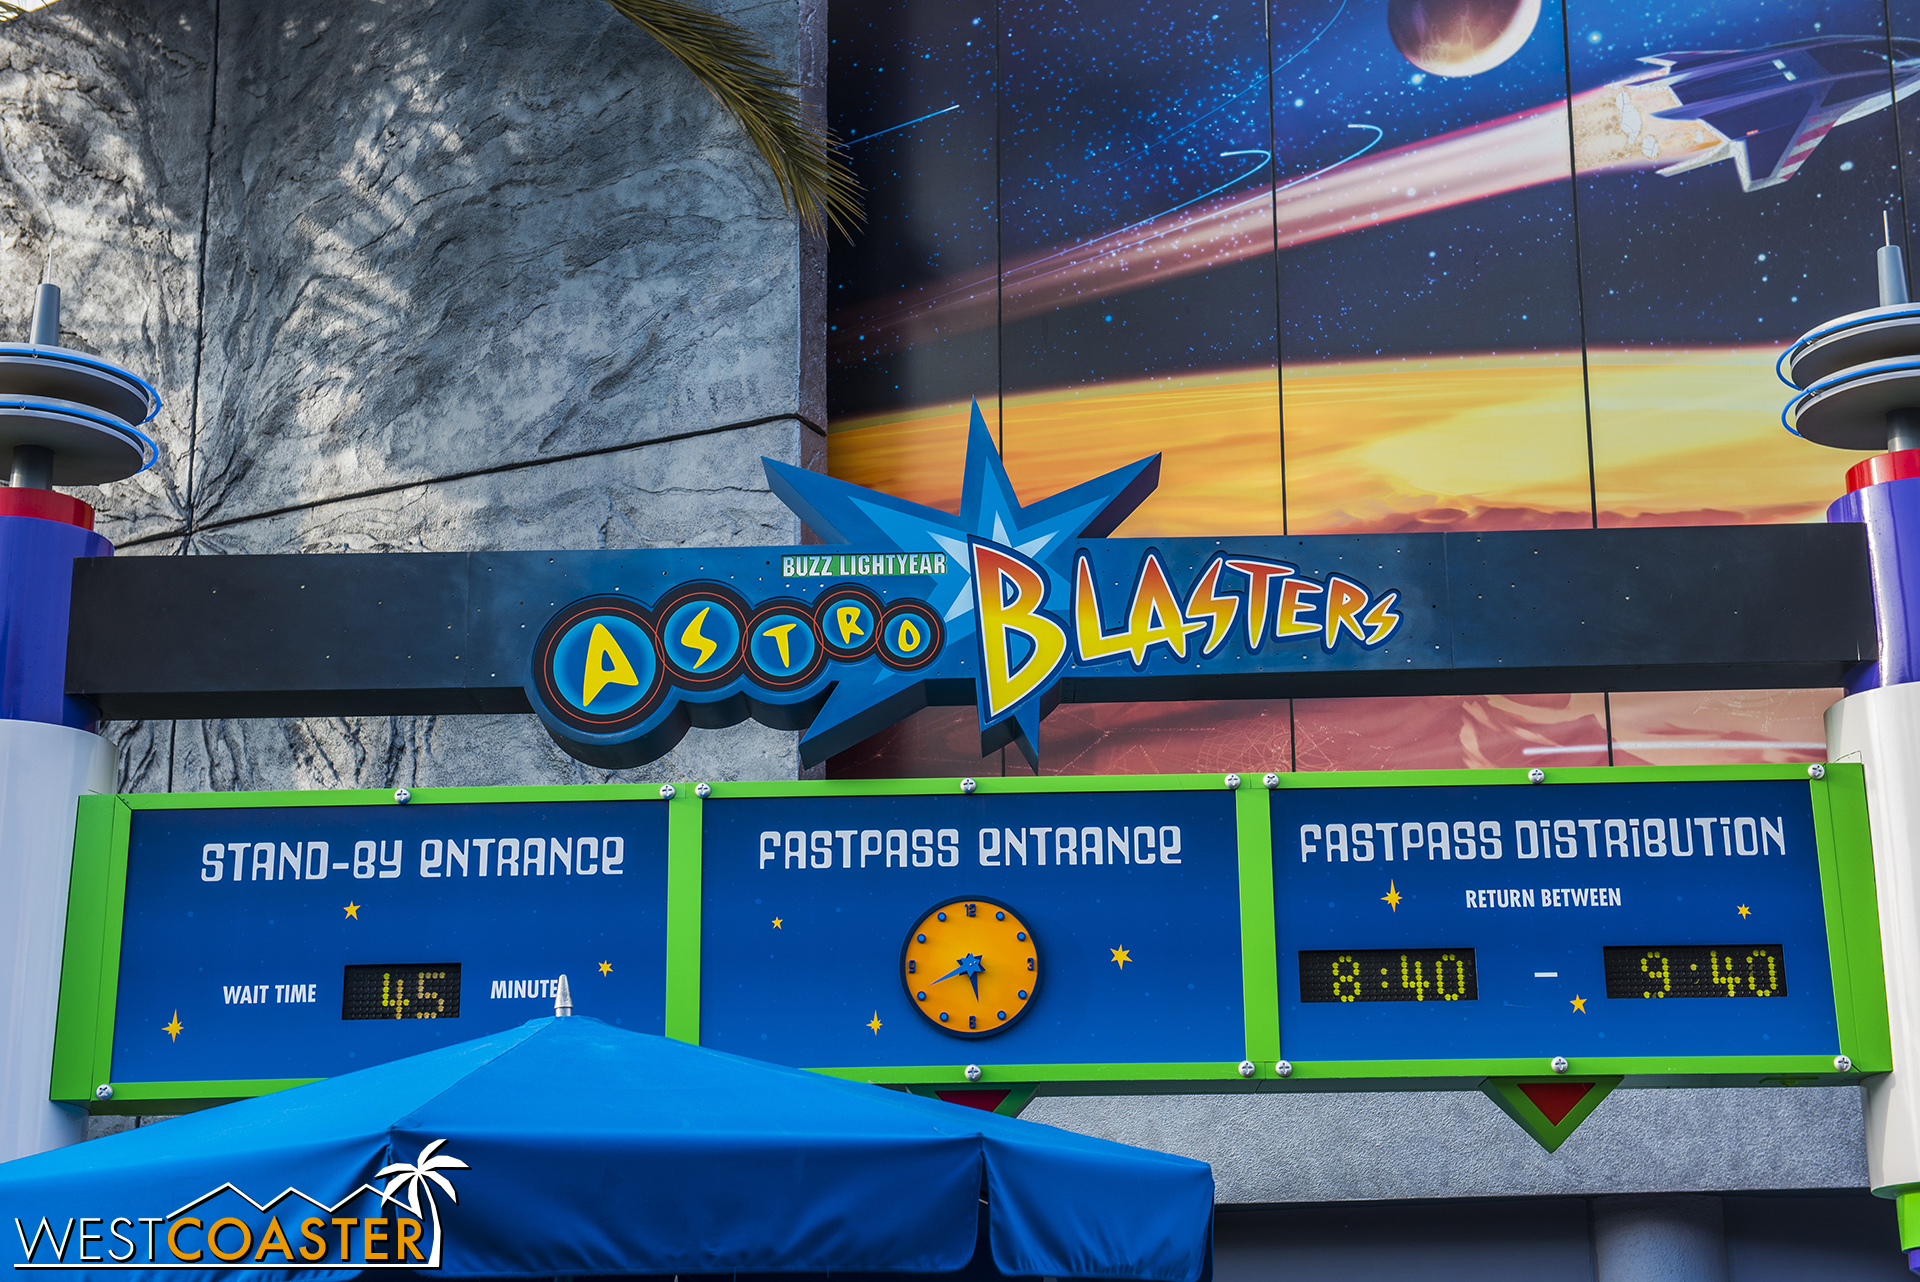 I do enjoy Astro Blasters a lot, but geez, 45 minutes?? This isn't Midway Mania, folks.